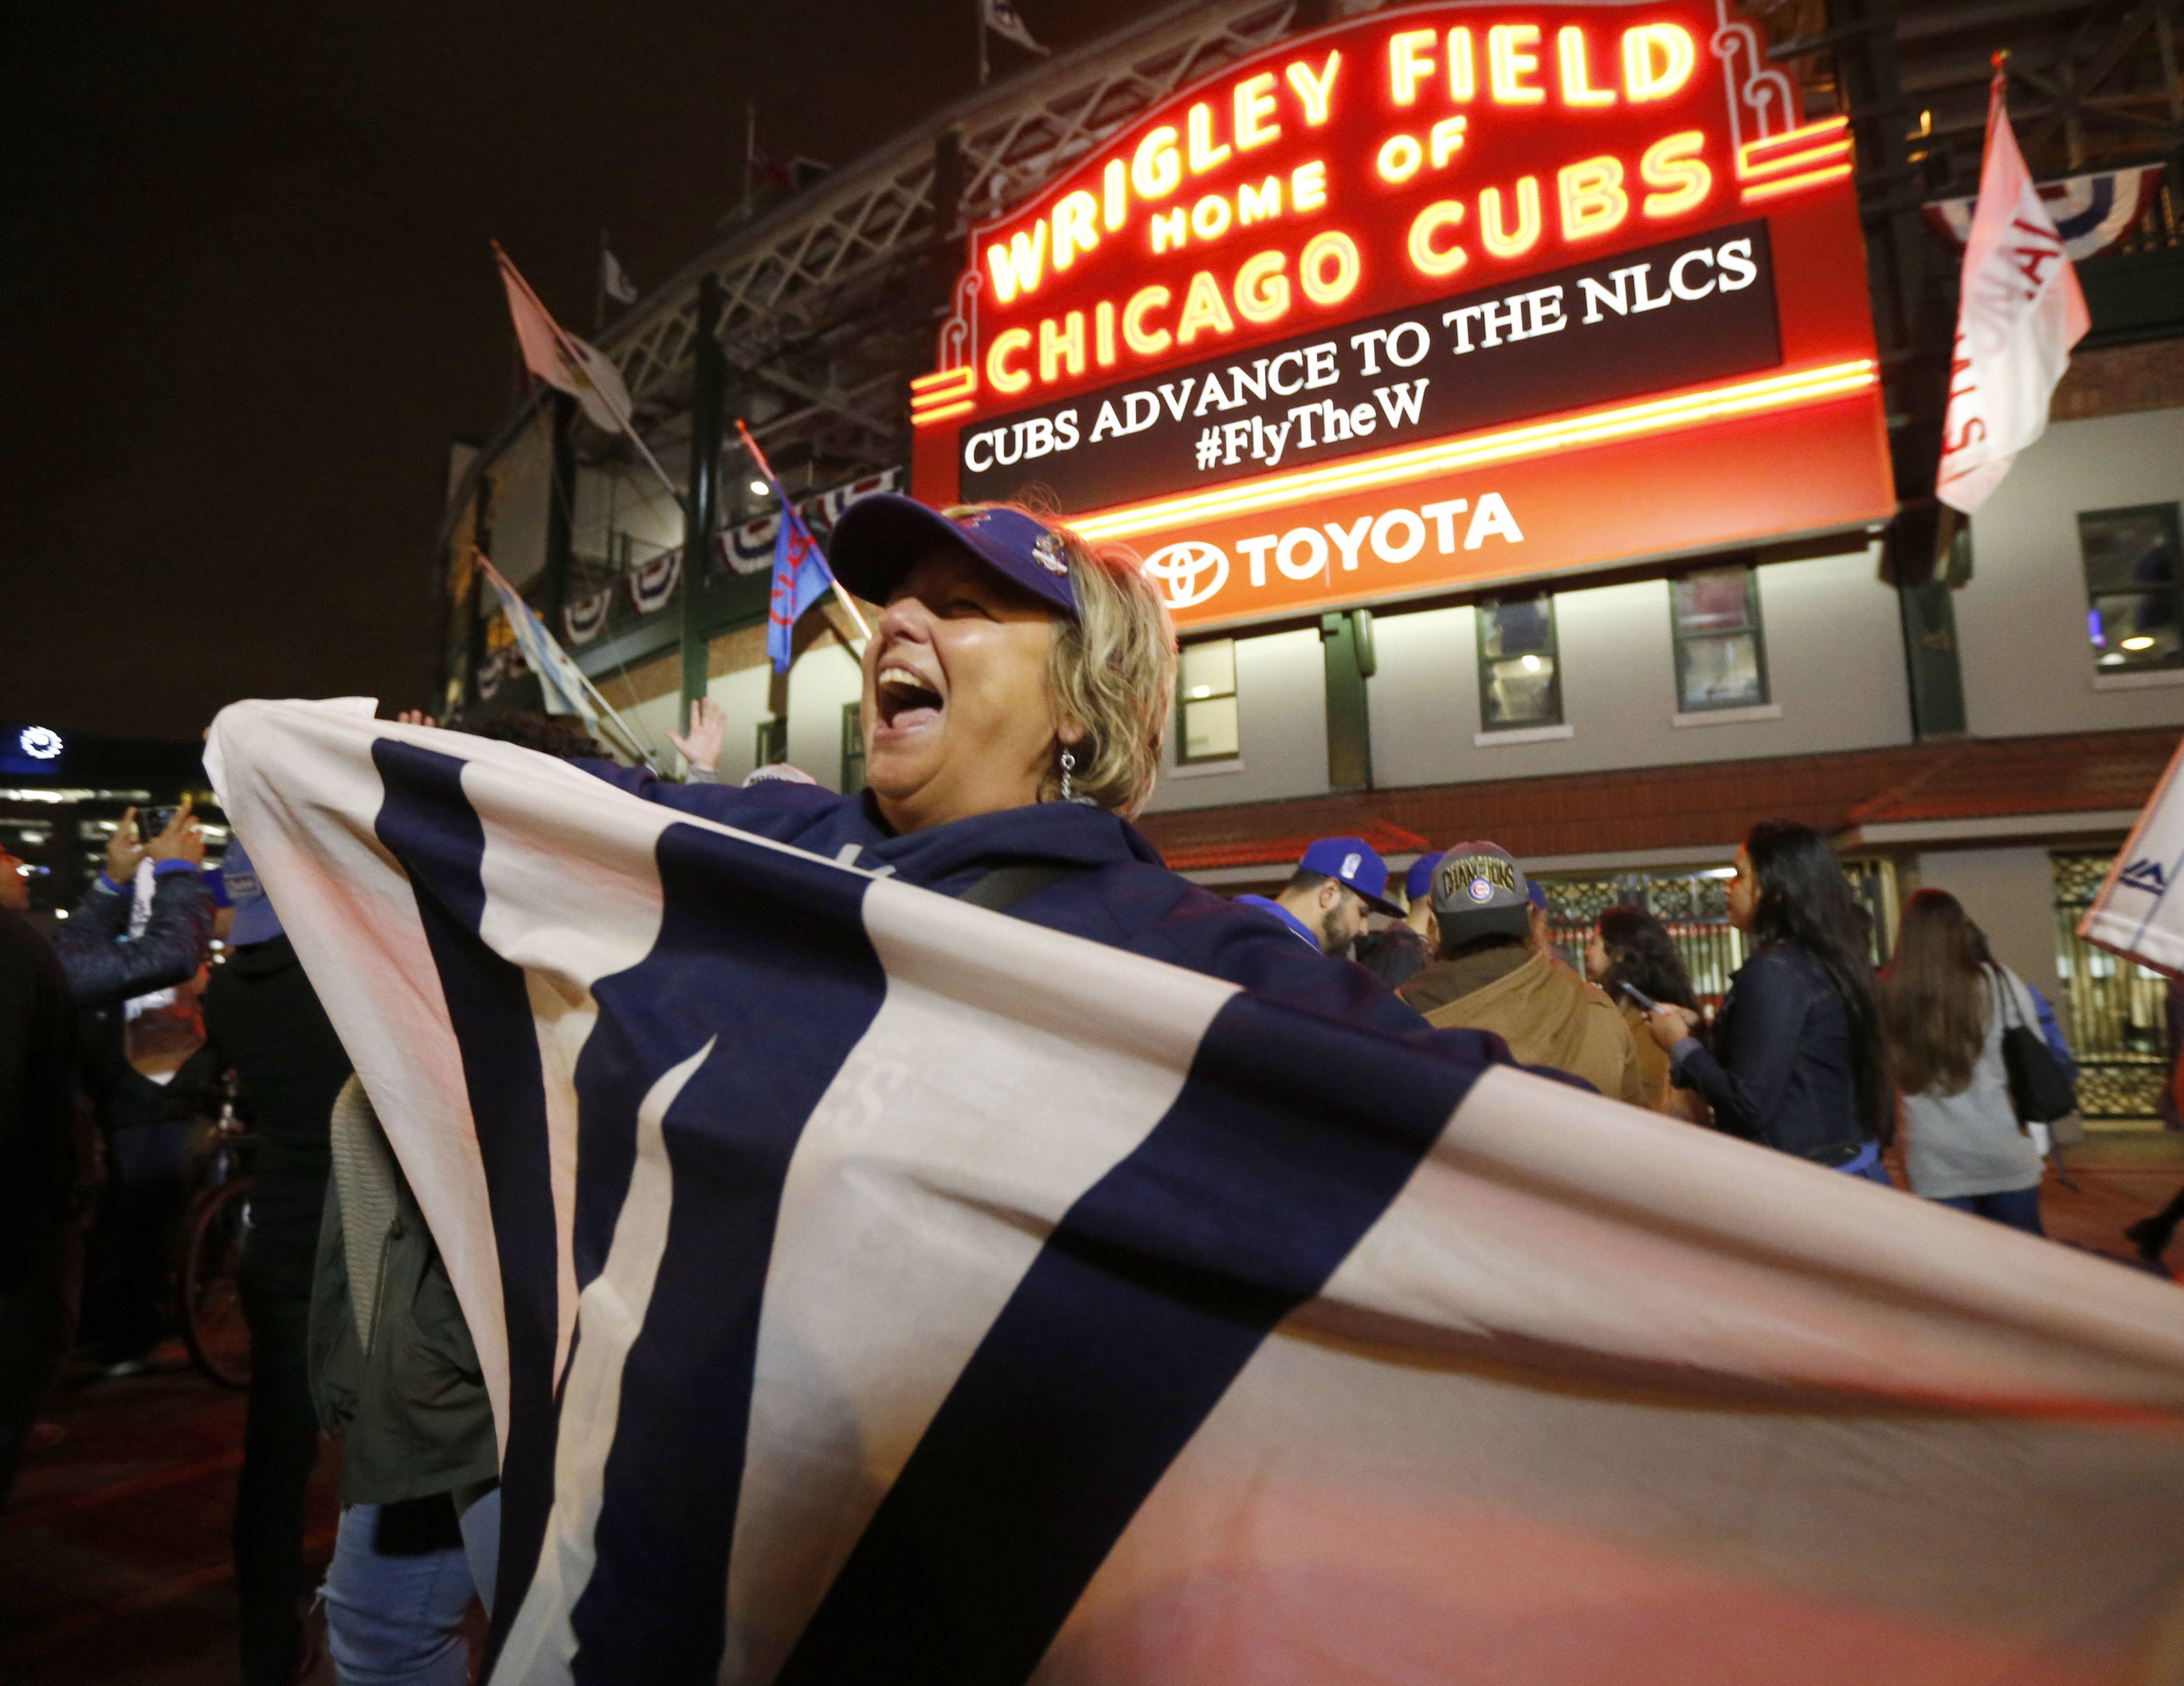 Constable: Cubs game too tense? We should be enjoying this ride